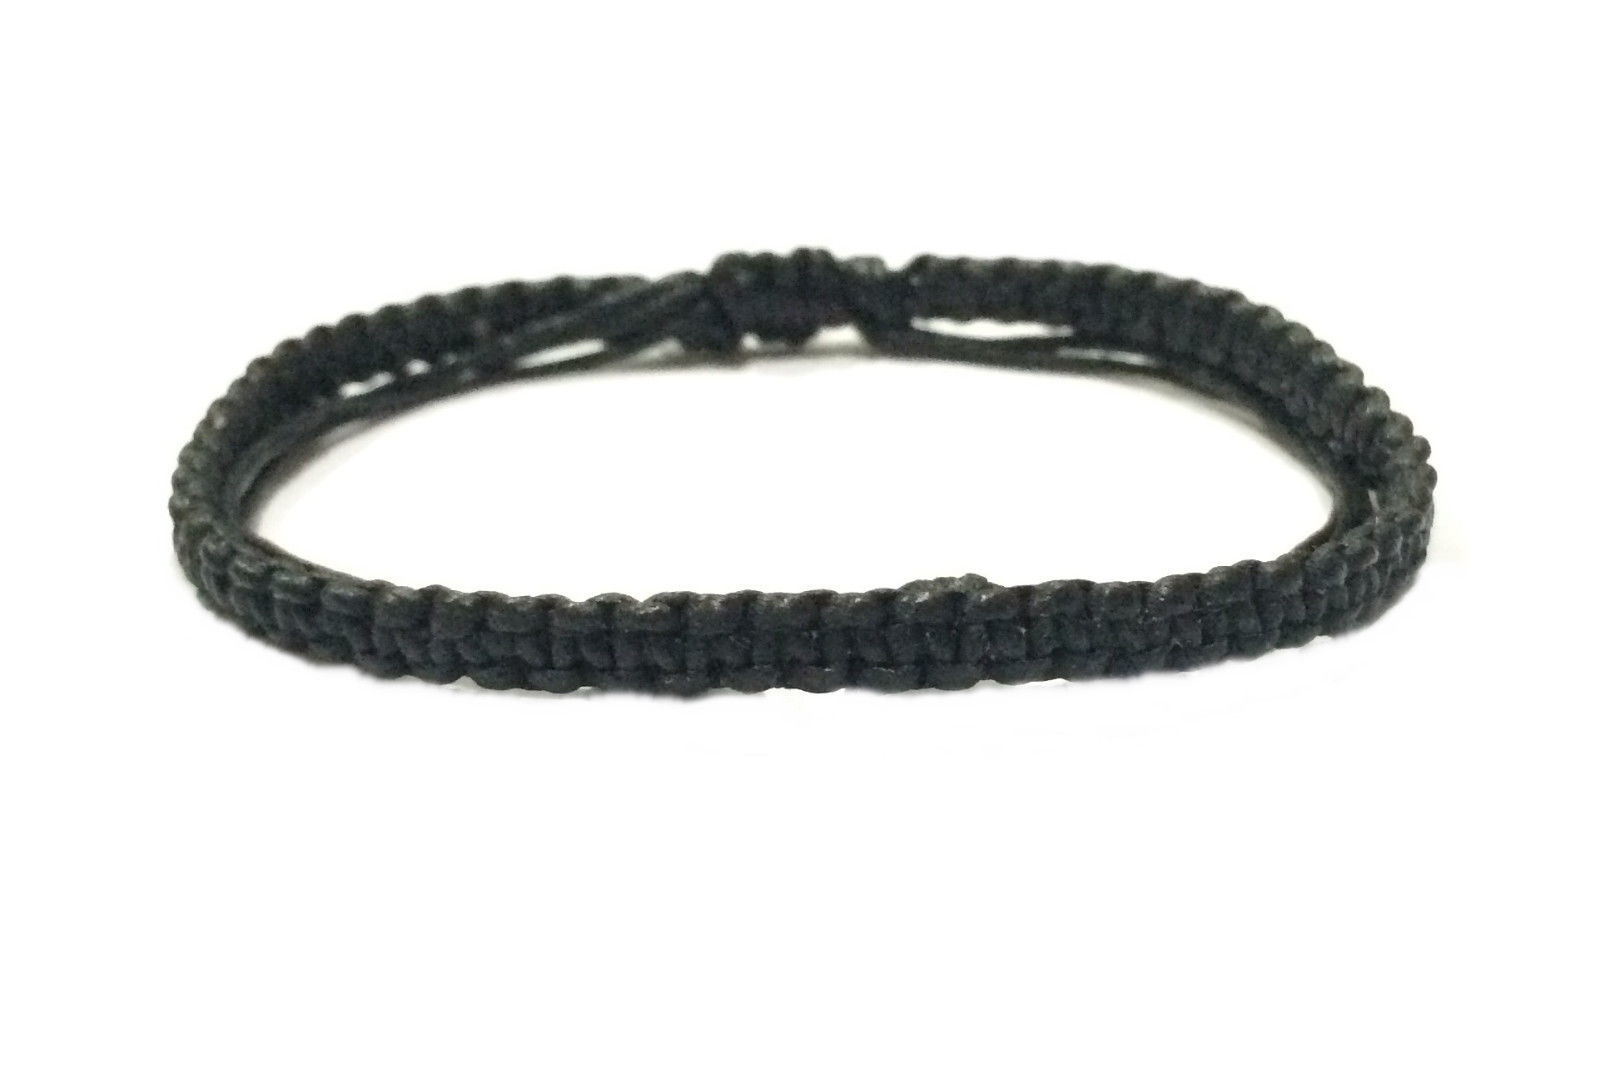 Fair Trade Waxed Cotton Weave Cord Buddhist Thai Wristband Handcrafted Wristwear